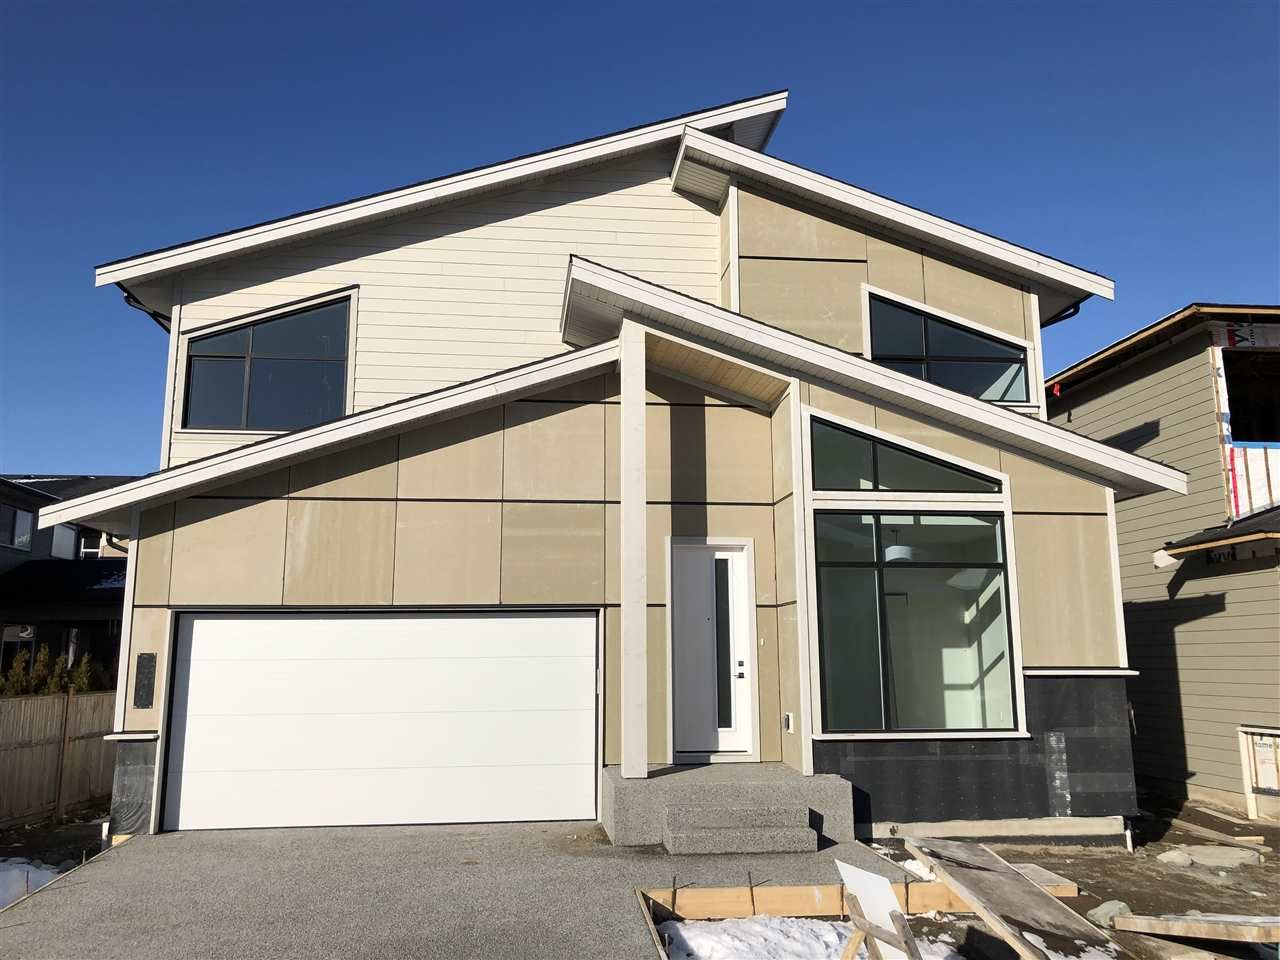 """Main Photo: 1703 SPARROW Way in Squamish: Brennan Center House for sale in """"Ravenswood"""" : MLS®# R2341093"""